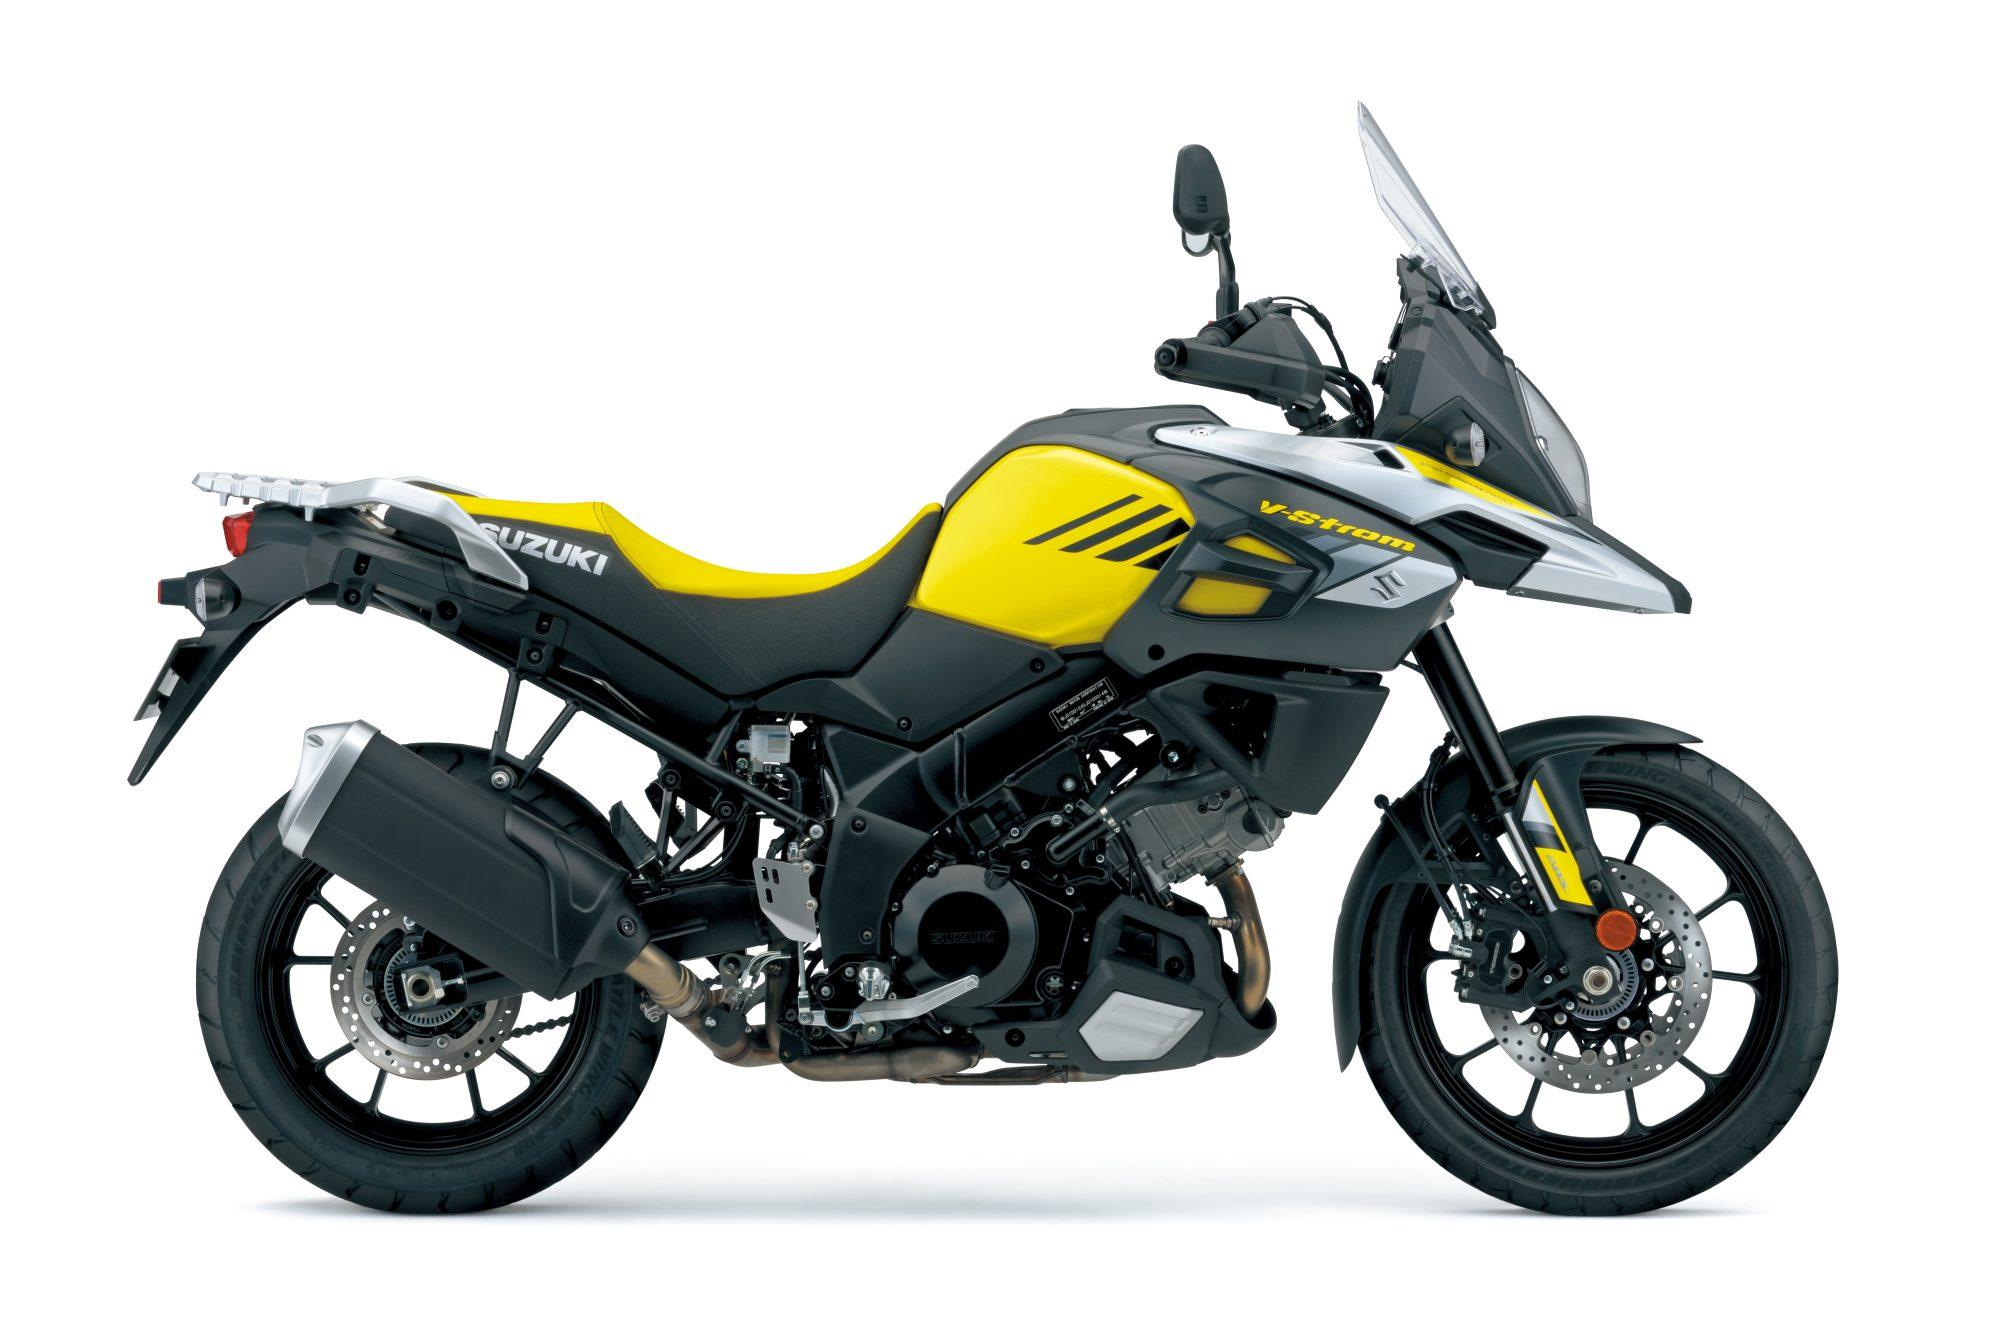 suzuki v strom 1000 abs 2017 motorrad fotos motorrad bilder. Black Bedroom Furniture Sets. Home Design Ideas